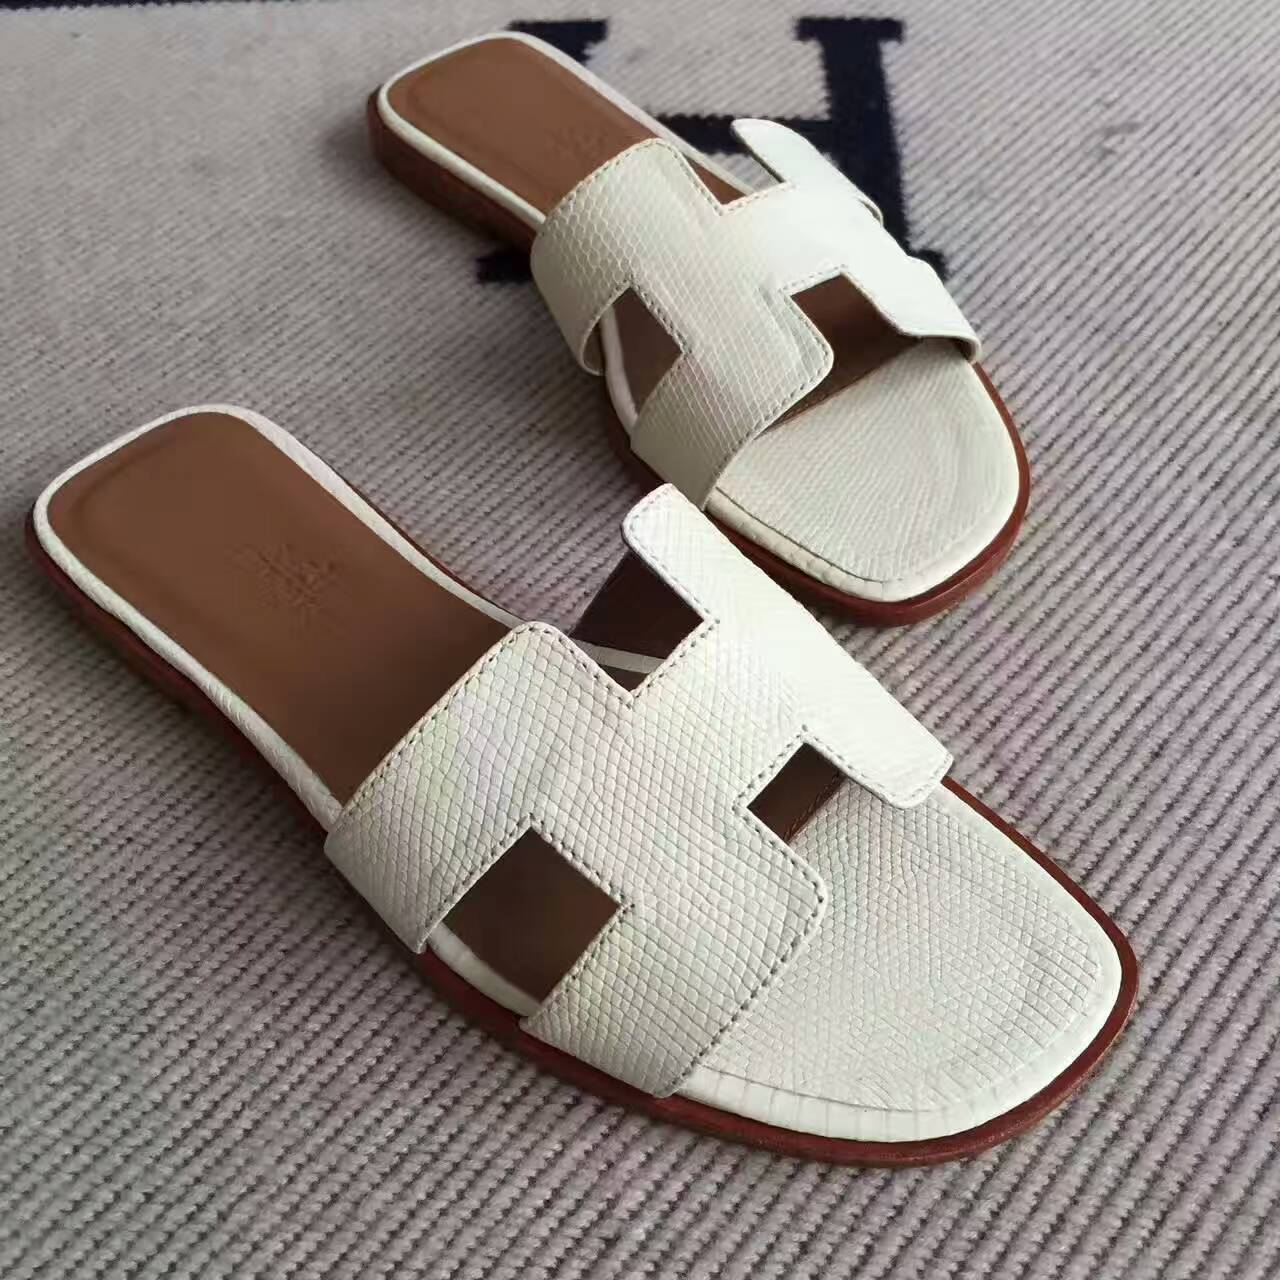 Noble Hermes White Lizard Skin Sandals Shoes Size 35 42